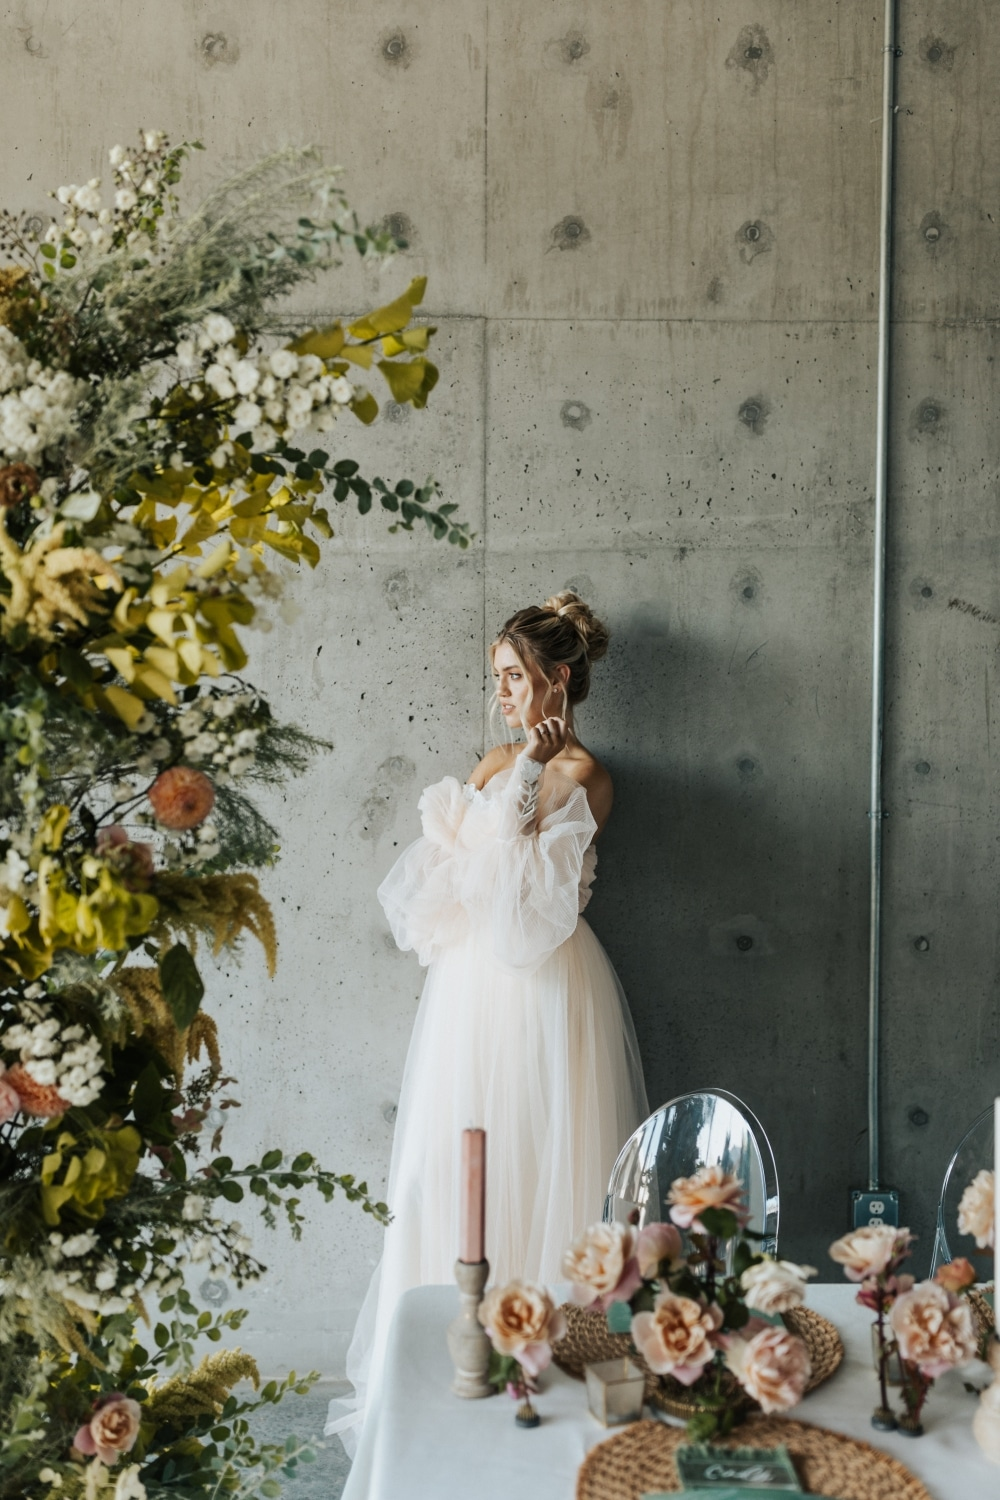 bride looking away behind table in flowers in stunning blush gown